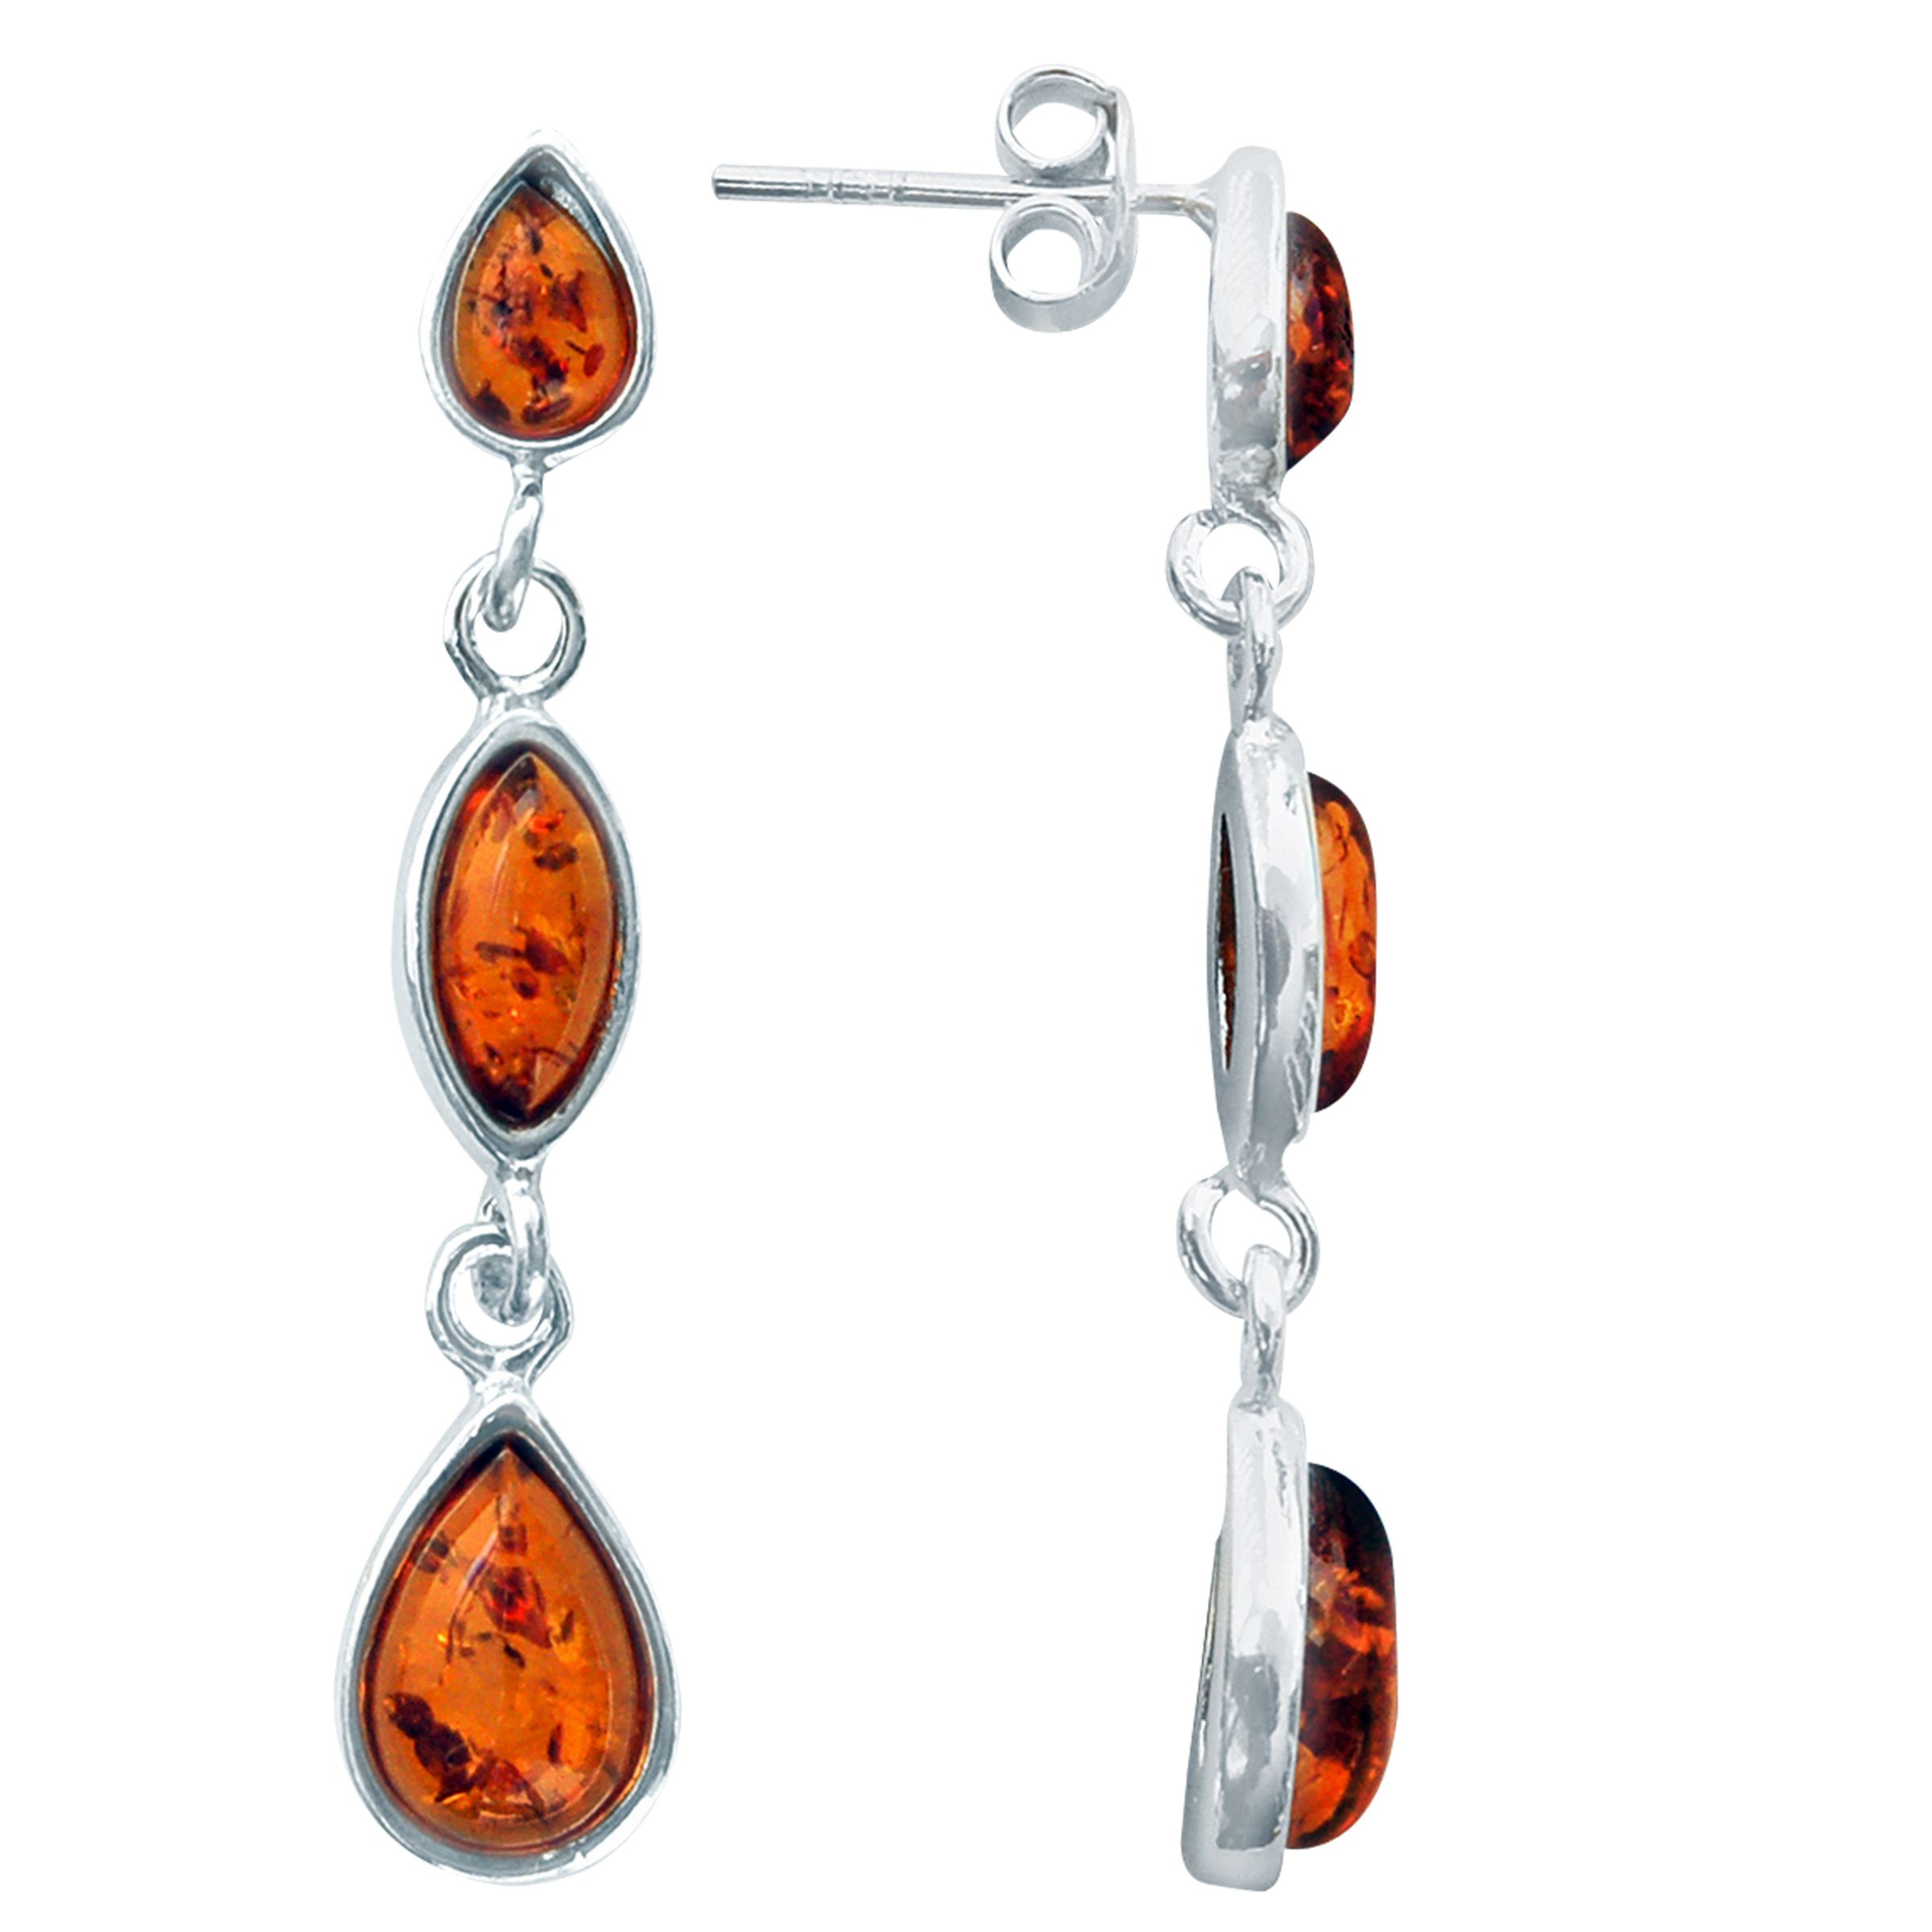 Goldmajor Goldmajor Amber and Sterling Silver Drop Earrings, Silver/Amber